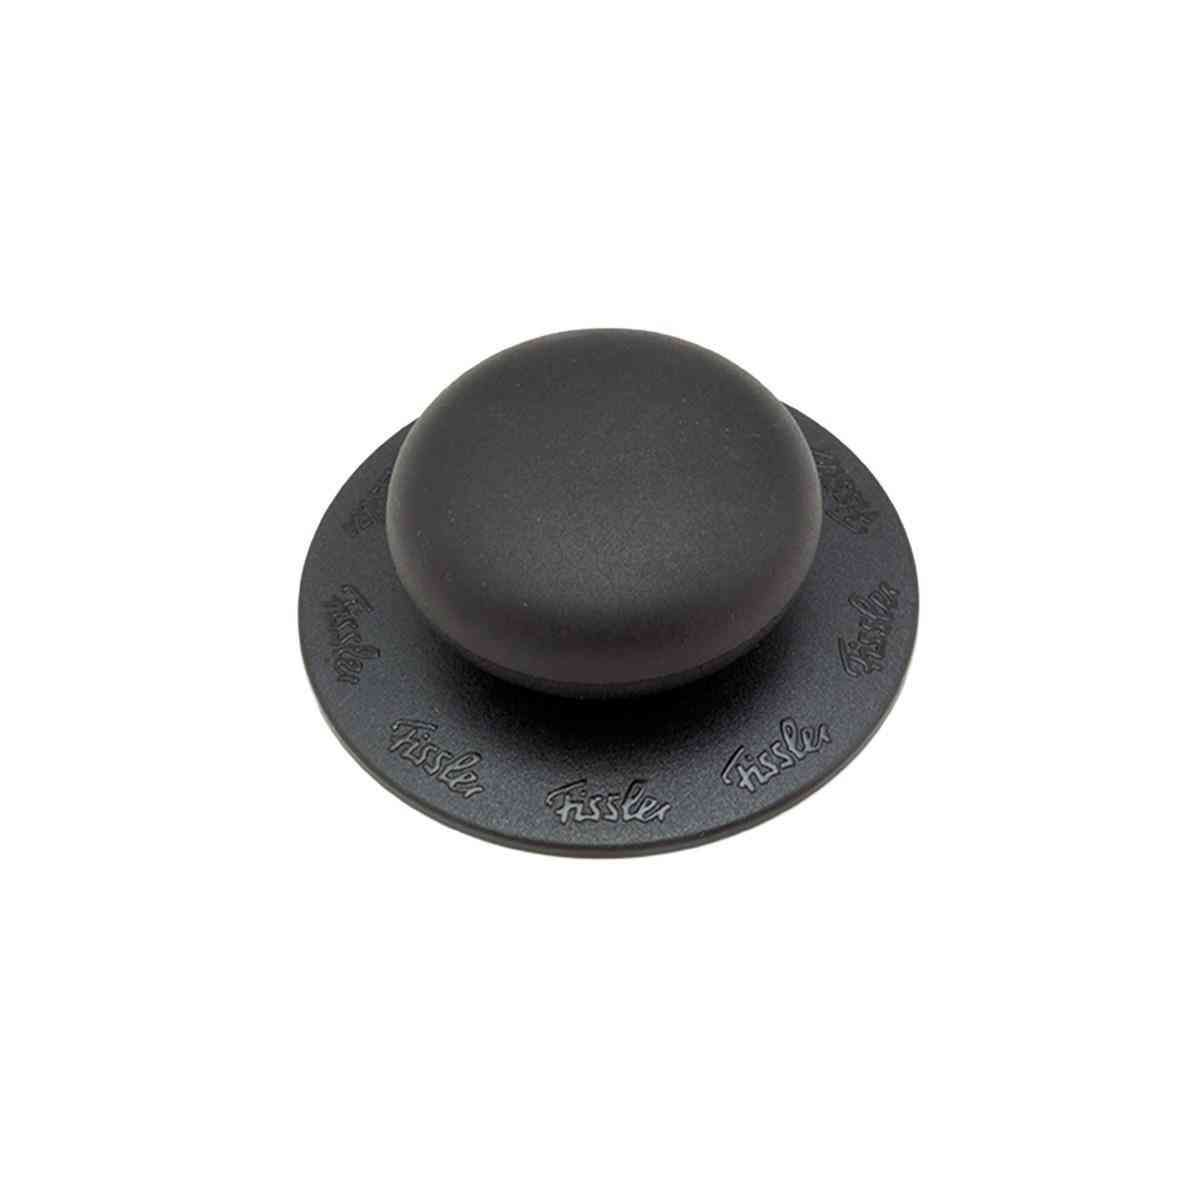 vitavit Pressure Cooker Lid Knob for Glass Lid